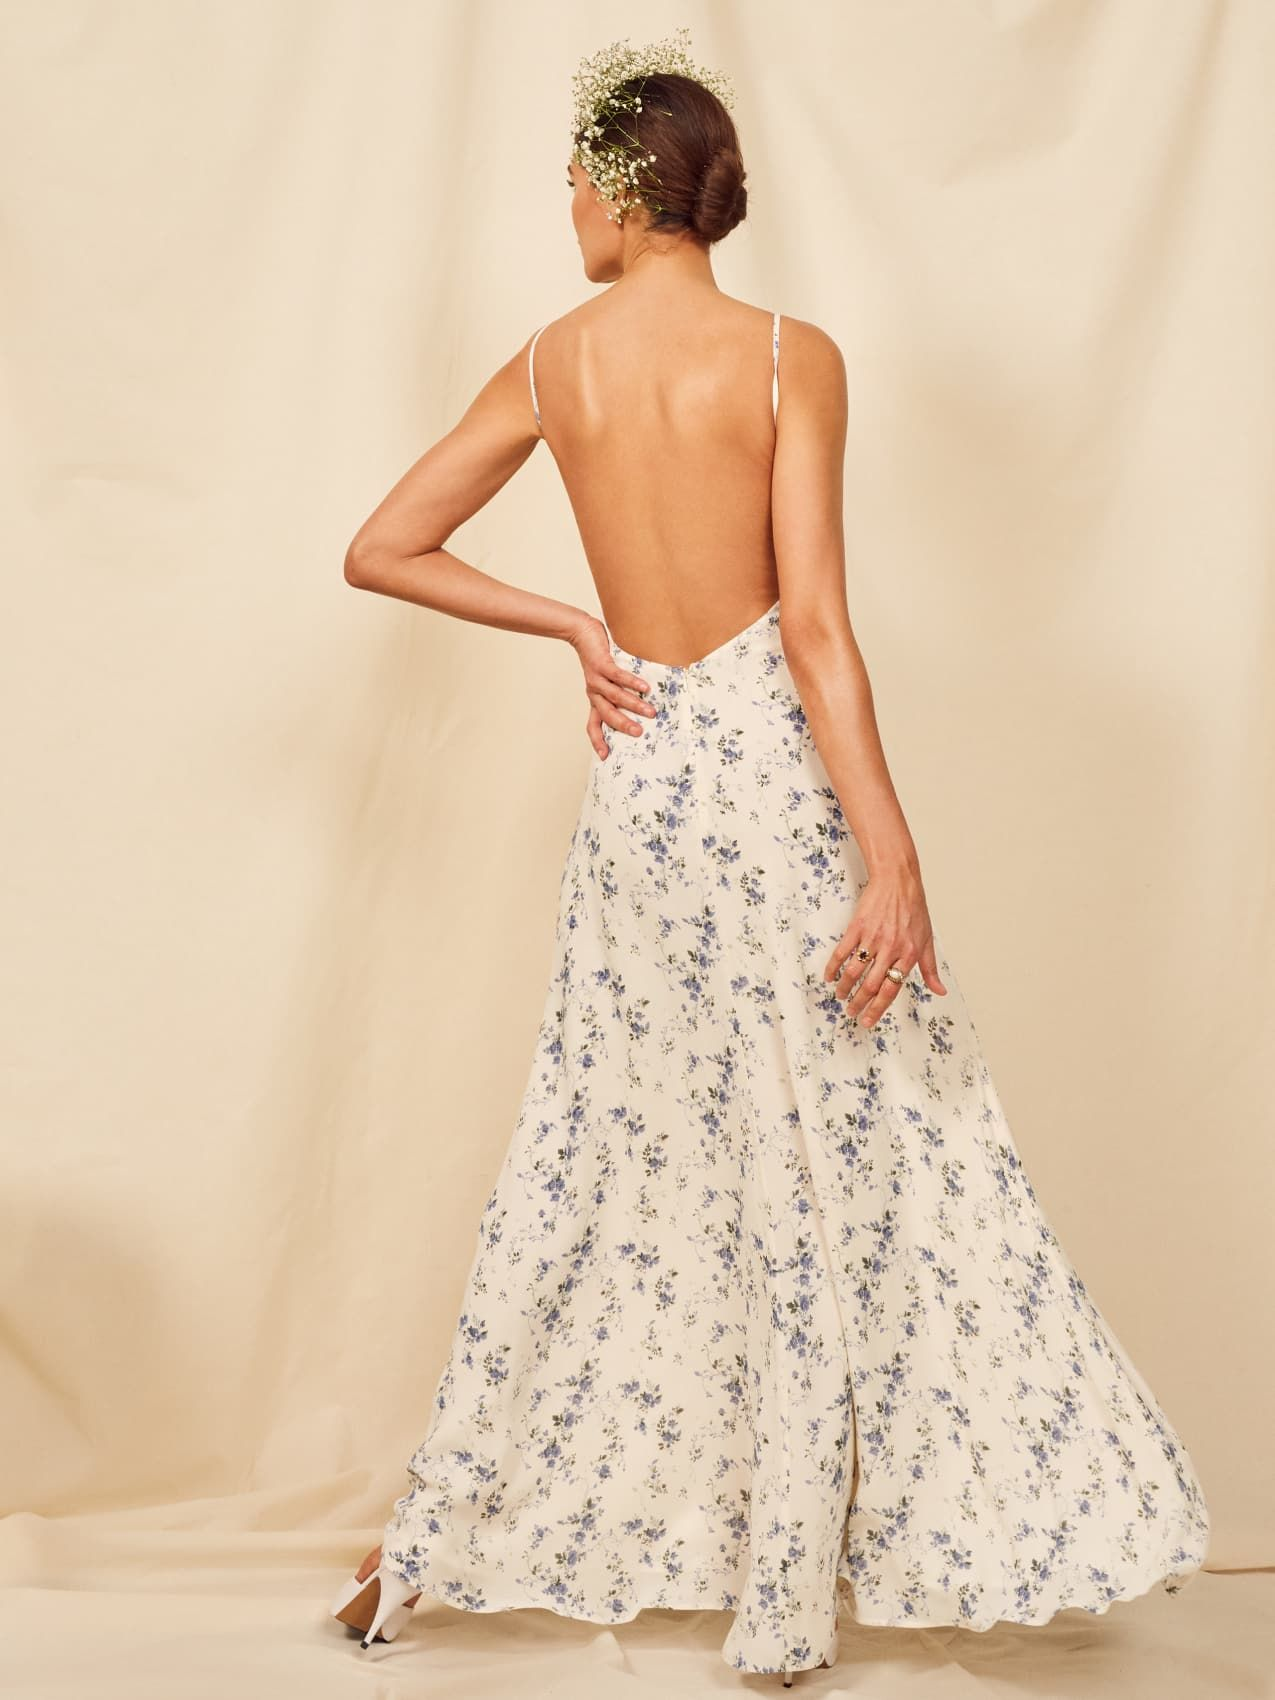 296f9ed03 The Modena Dress   The Spring Wedding Collection in 2019   Dresses ...